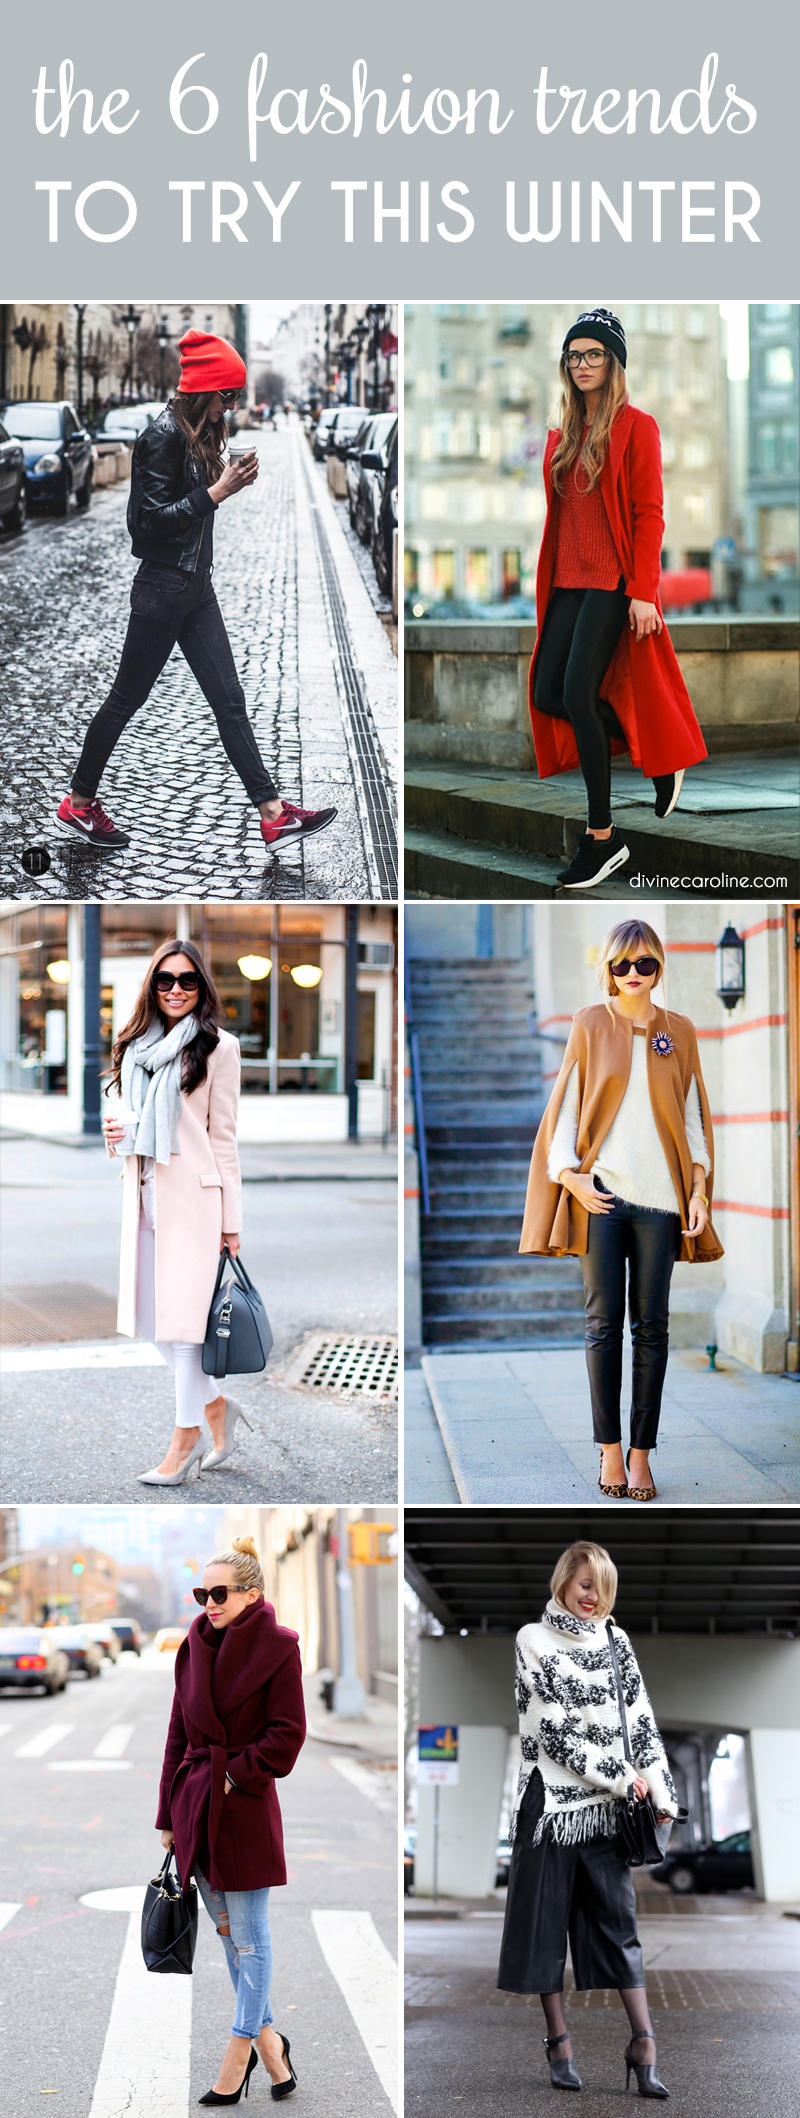 Fashion Trends: The Hottest Winter Fashion Trends From Head To Toe